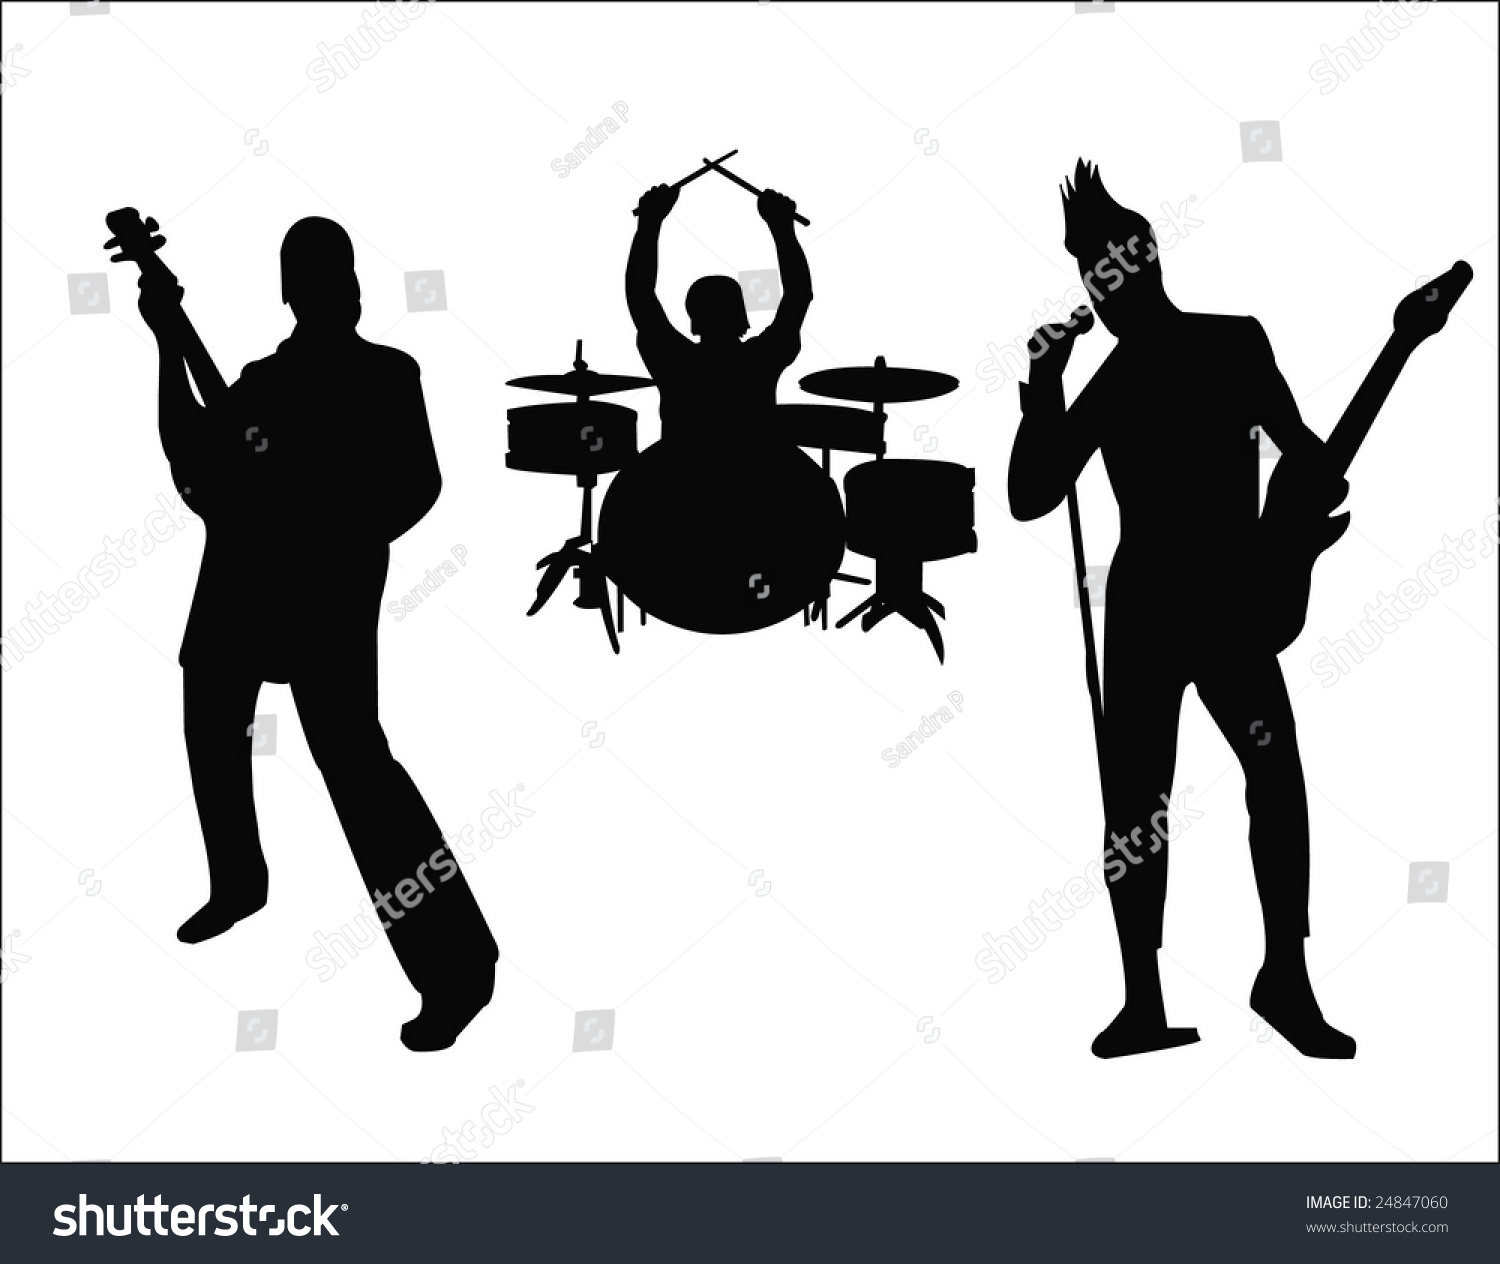 Silhouette Of Rock Band Stock Vector Illustration 24847060 ... Rock Band Silhouette